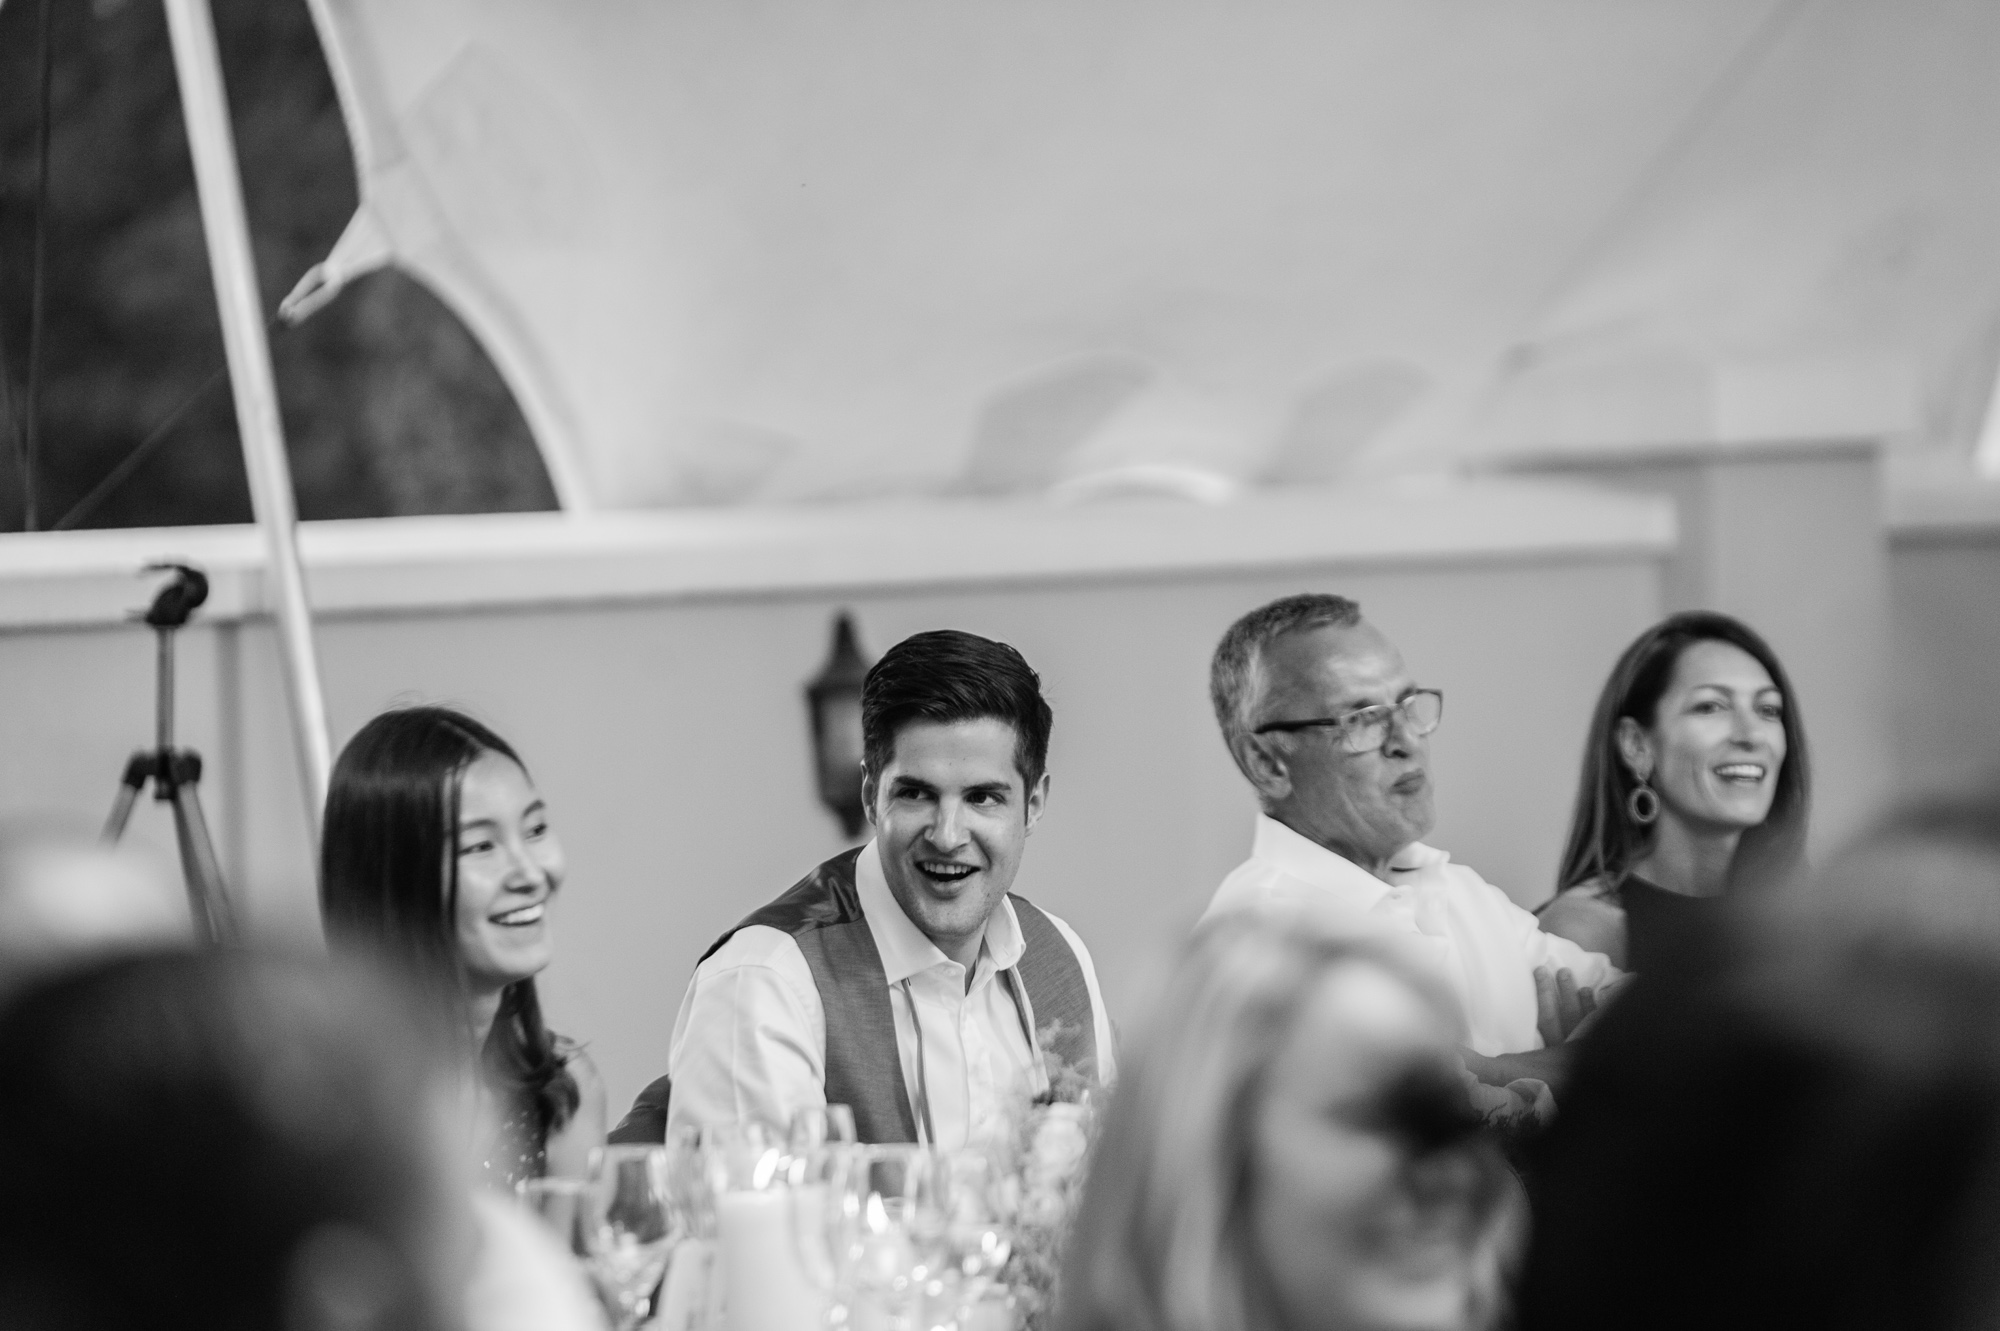 john-henry-wedding-photographer-reception-001-29.jpg